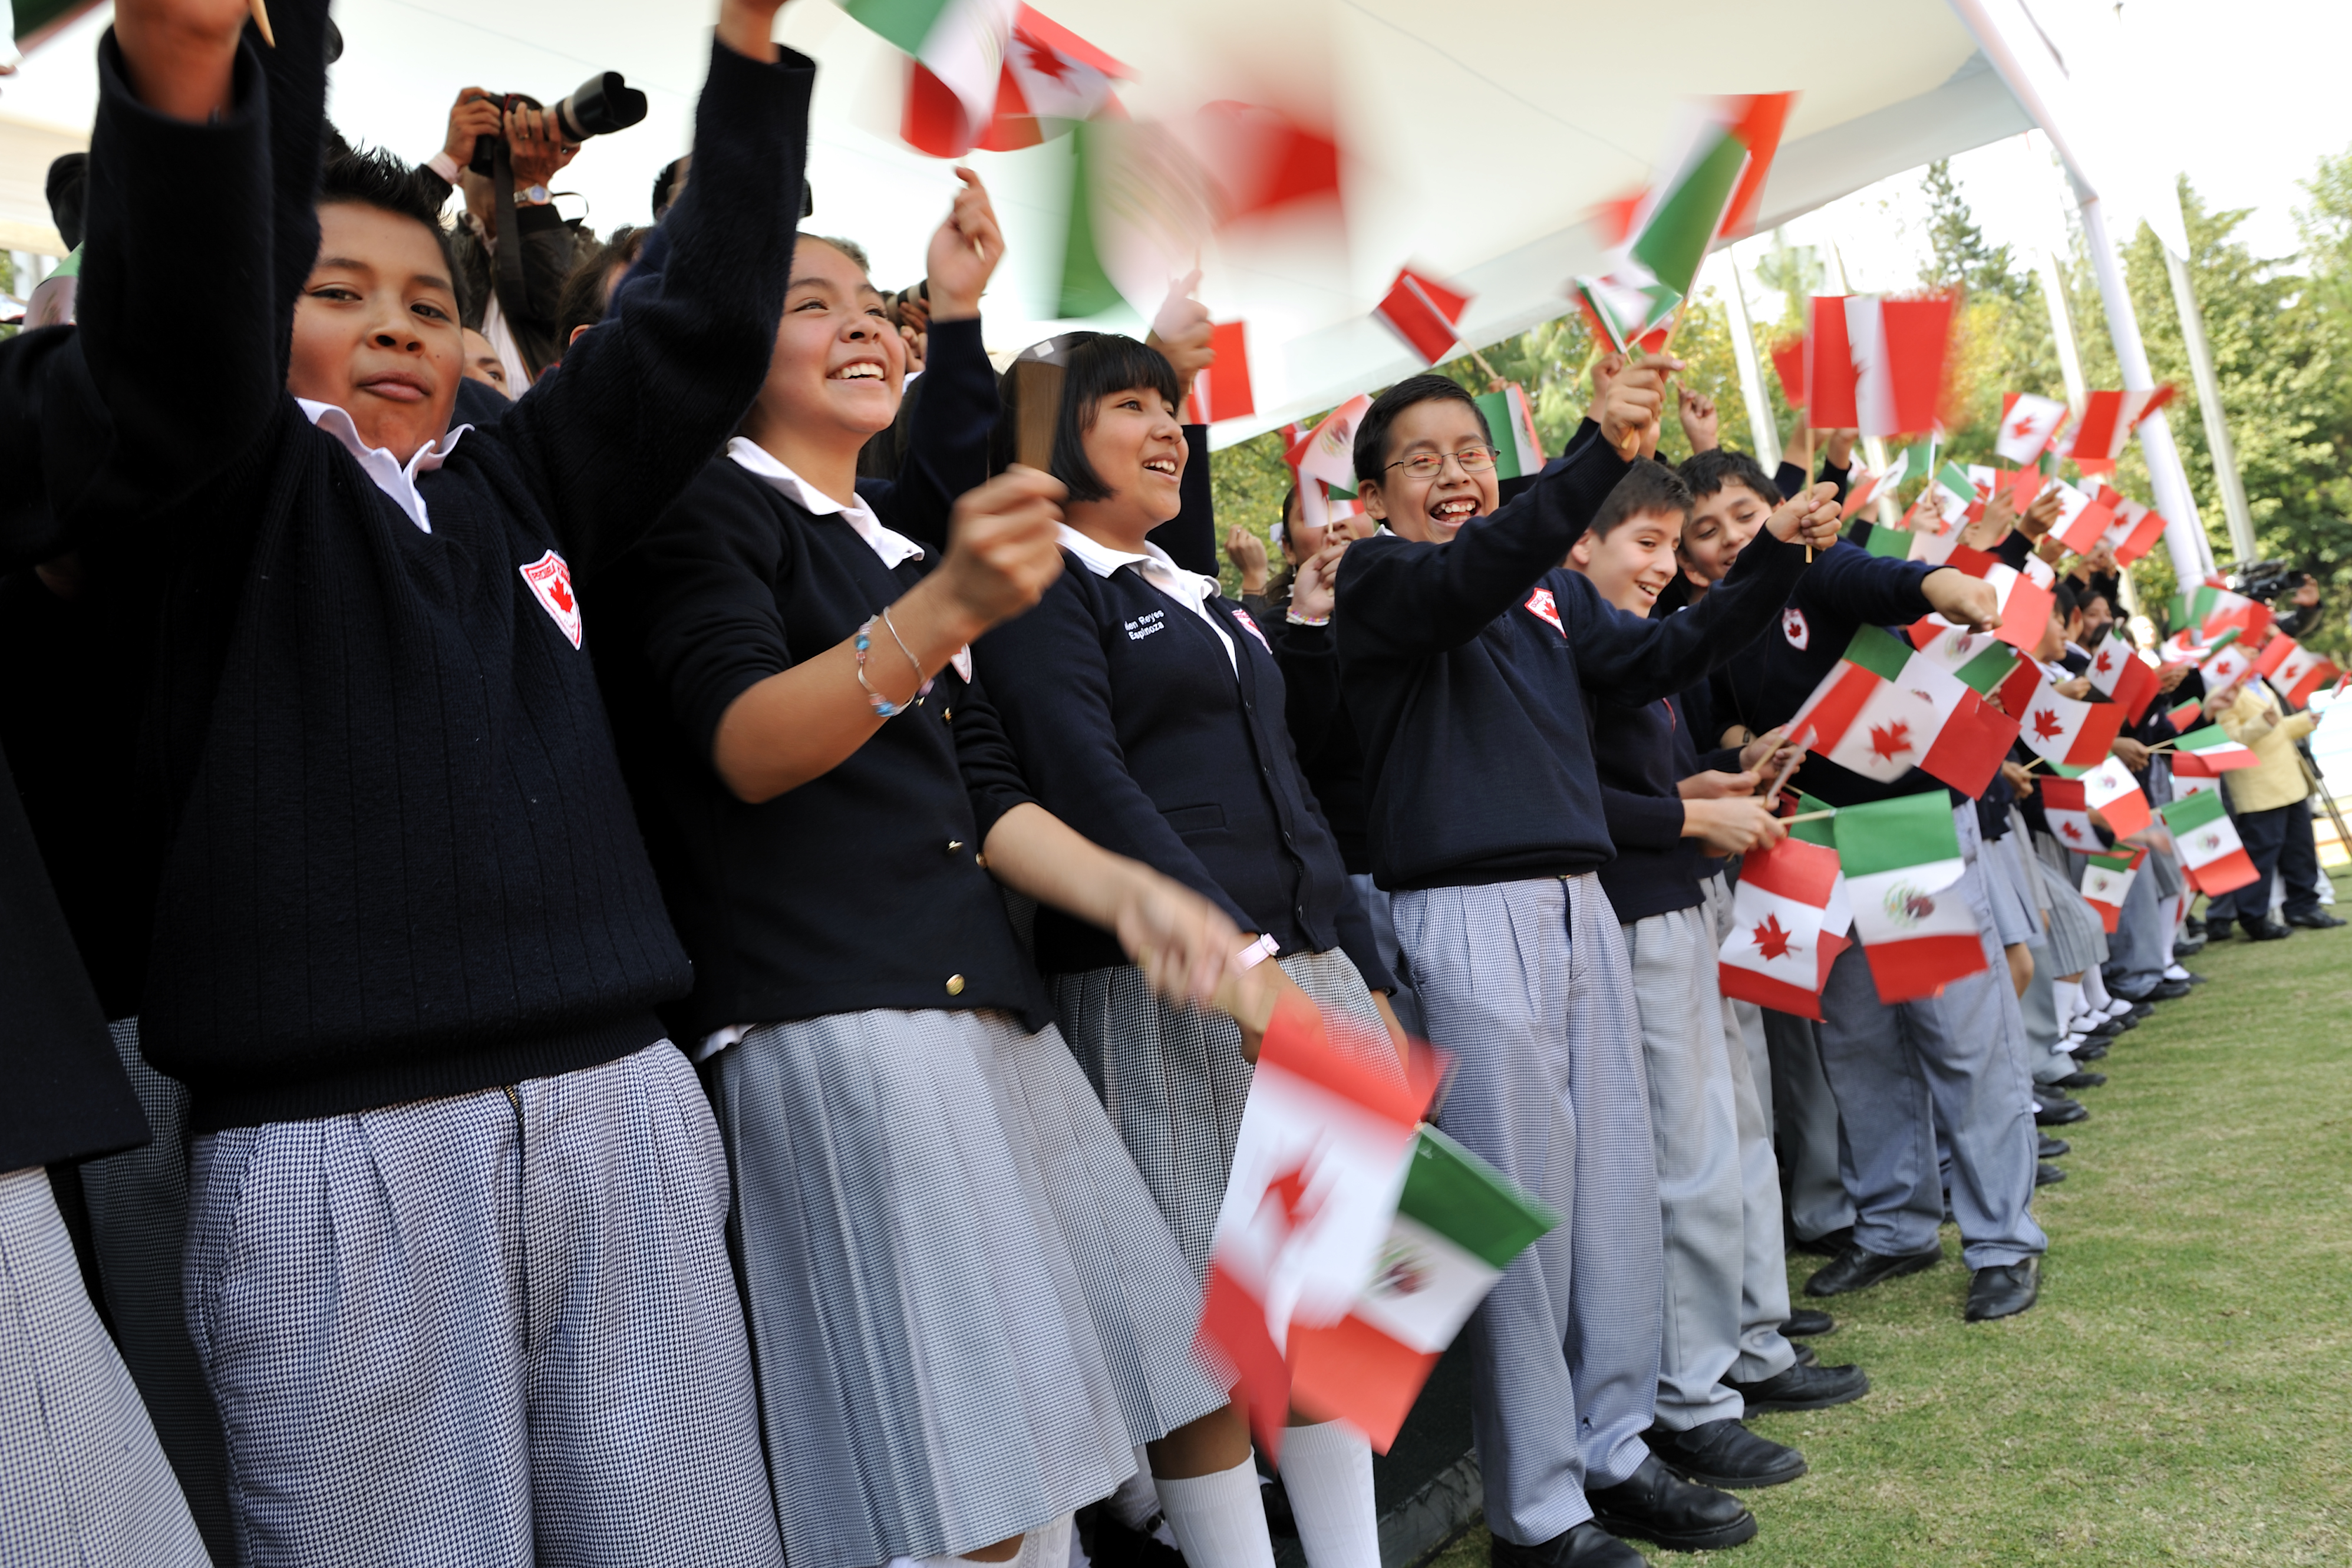 Many Mexican children with flags from both countries attended the event.